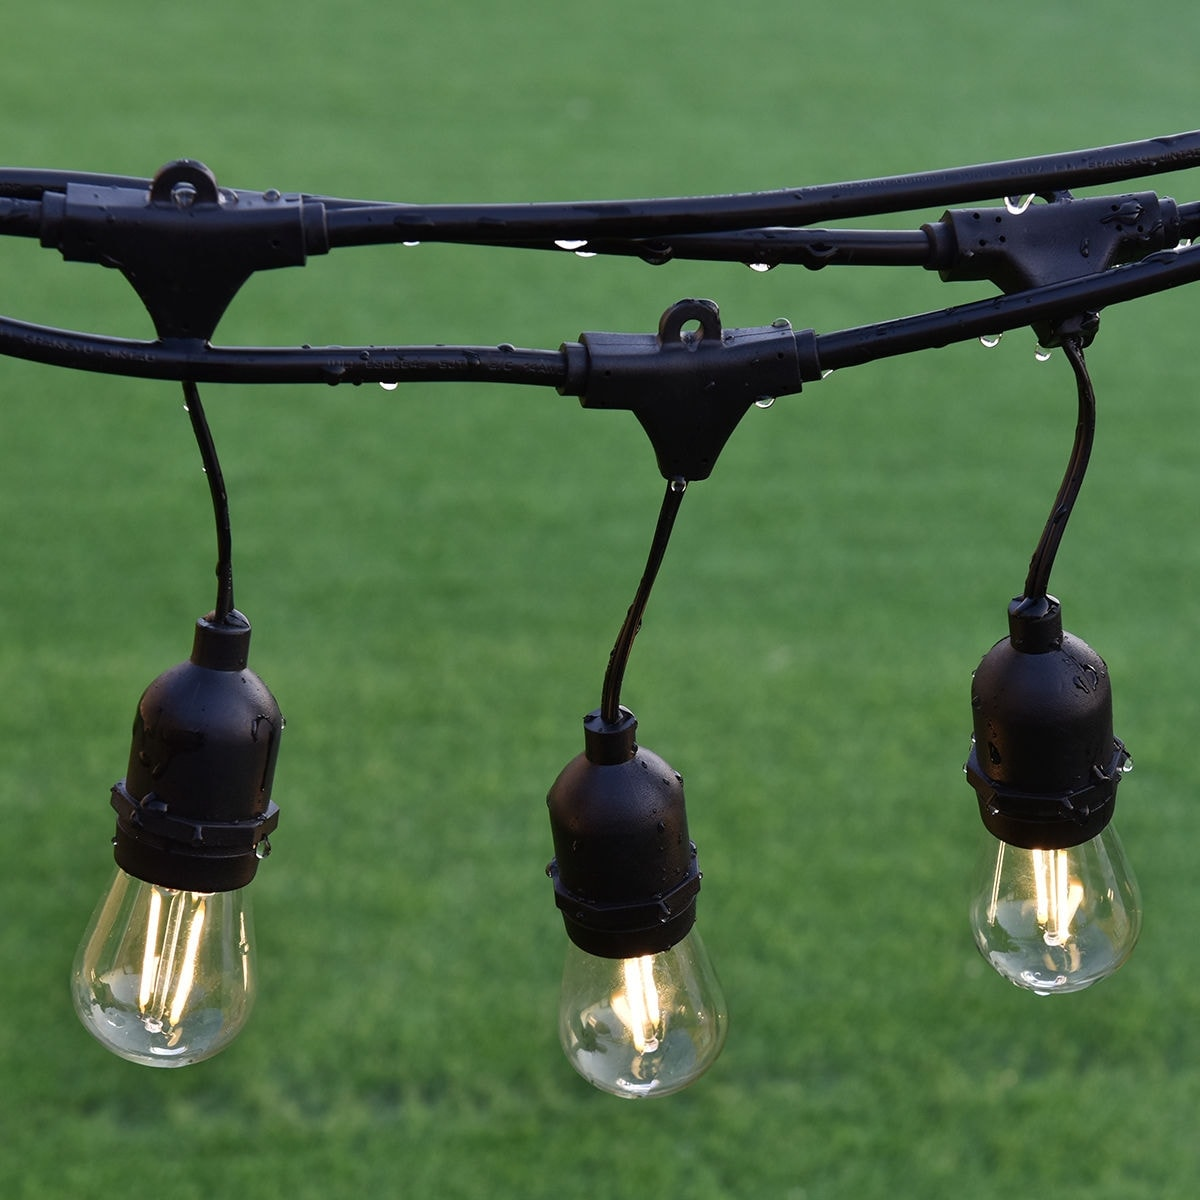 Shop Costway 48FT LED Outdoor Waterproof Commercial Grade Patio Globe  String Lights Bulbs   As Pic   Free Shipping Today   Overstock.com    21010010